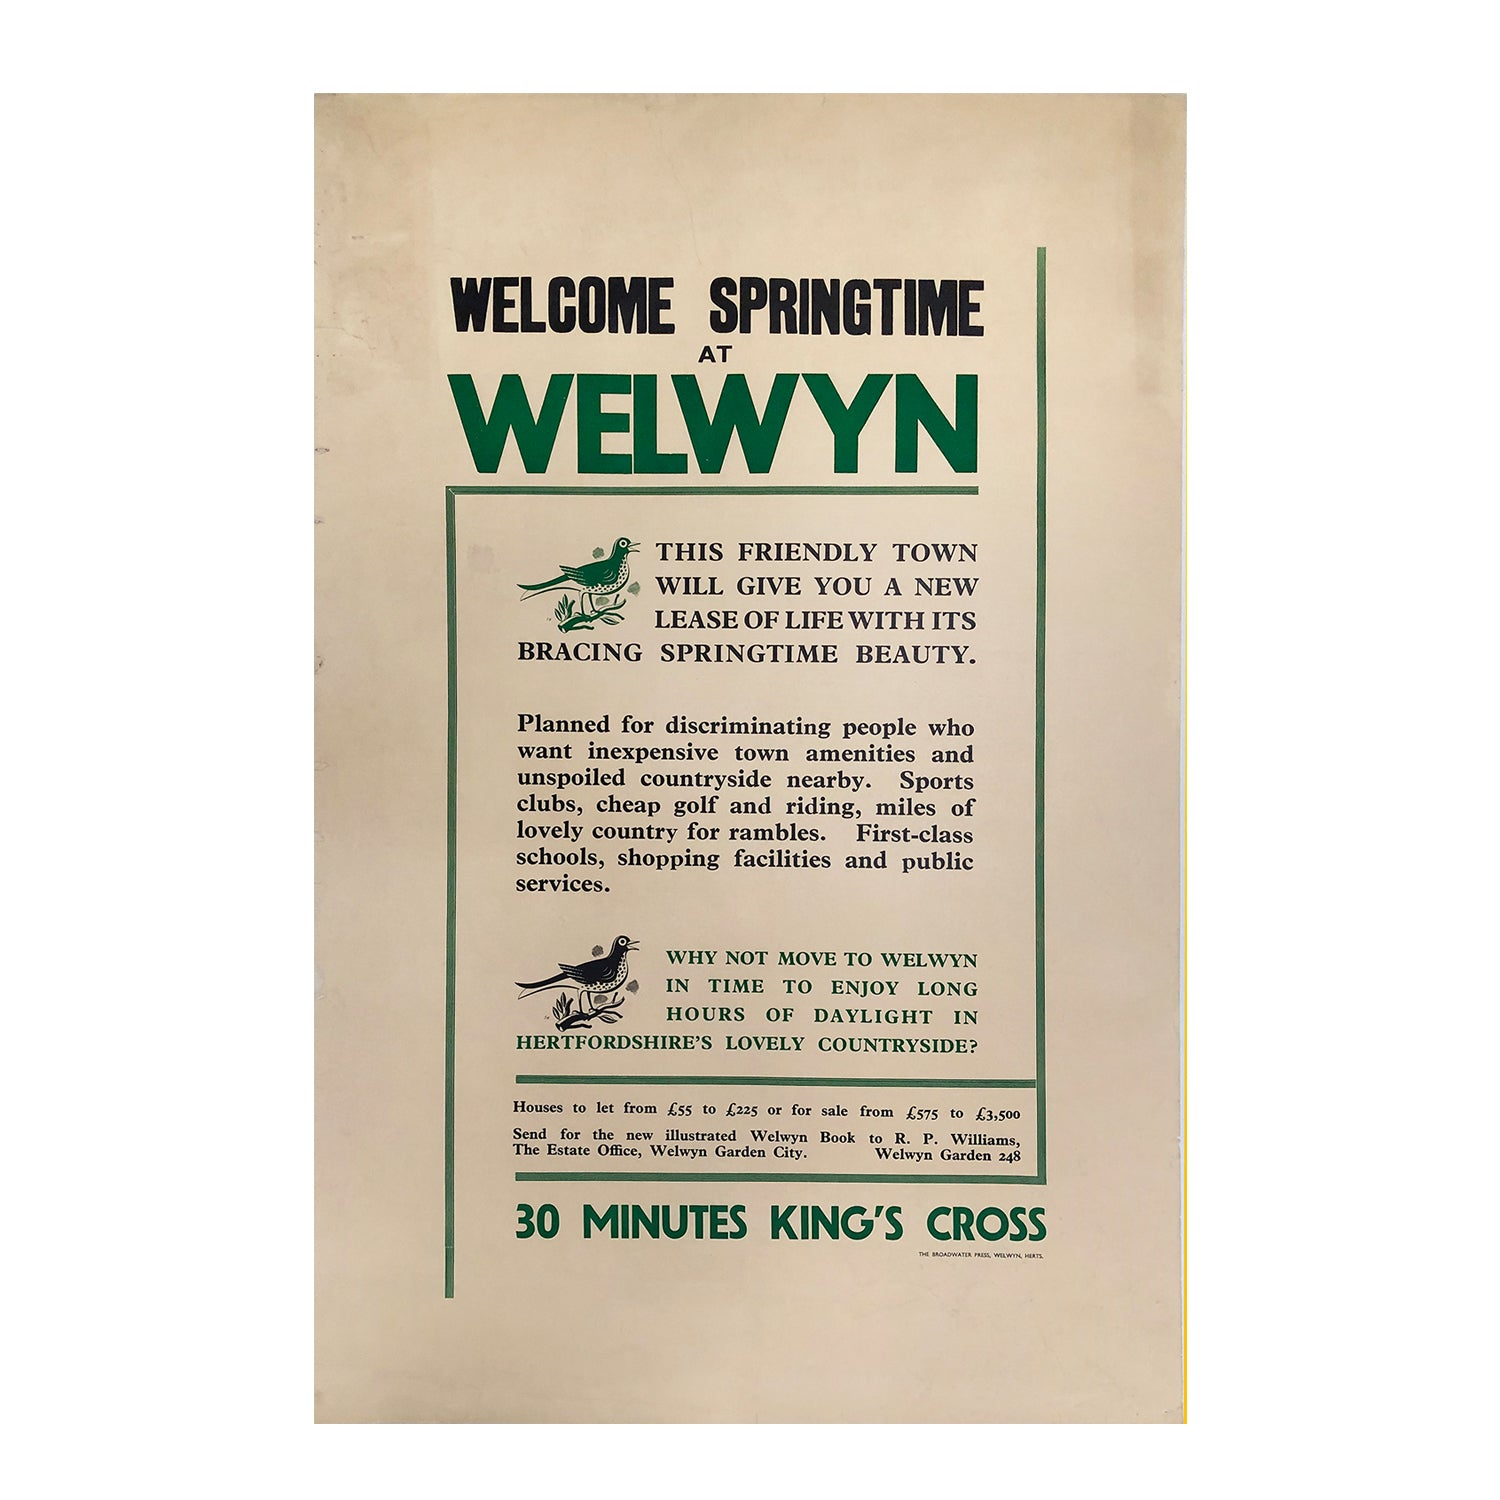 Original vintage poster promoting homes for sale in Welwyn Garden City, with illustrations by Stanley Herbert